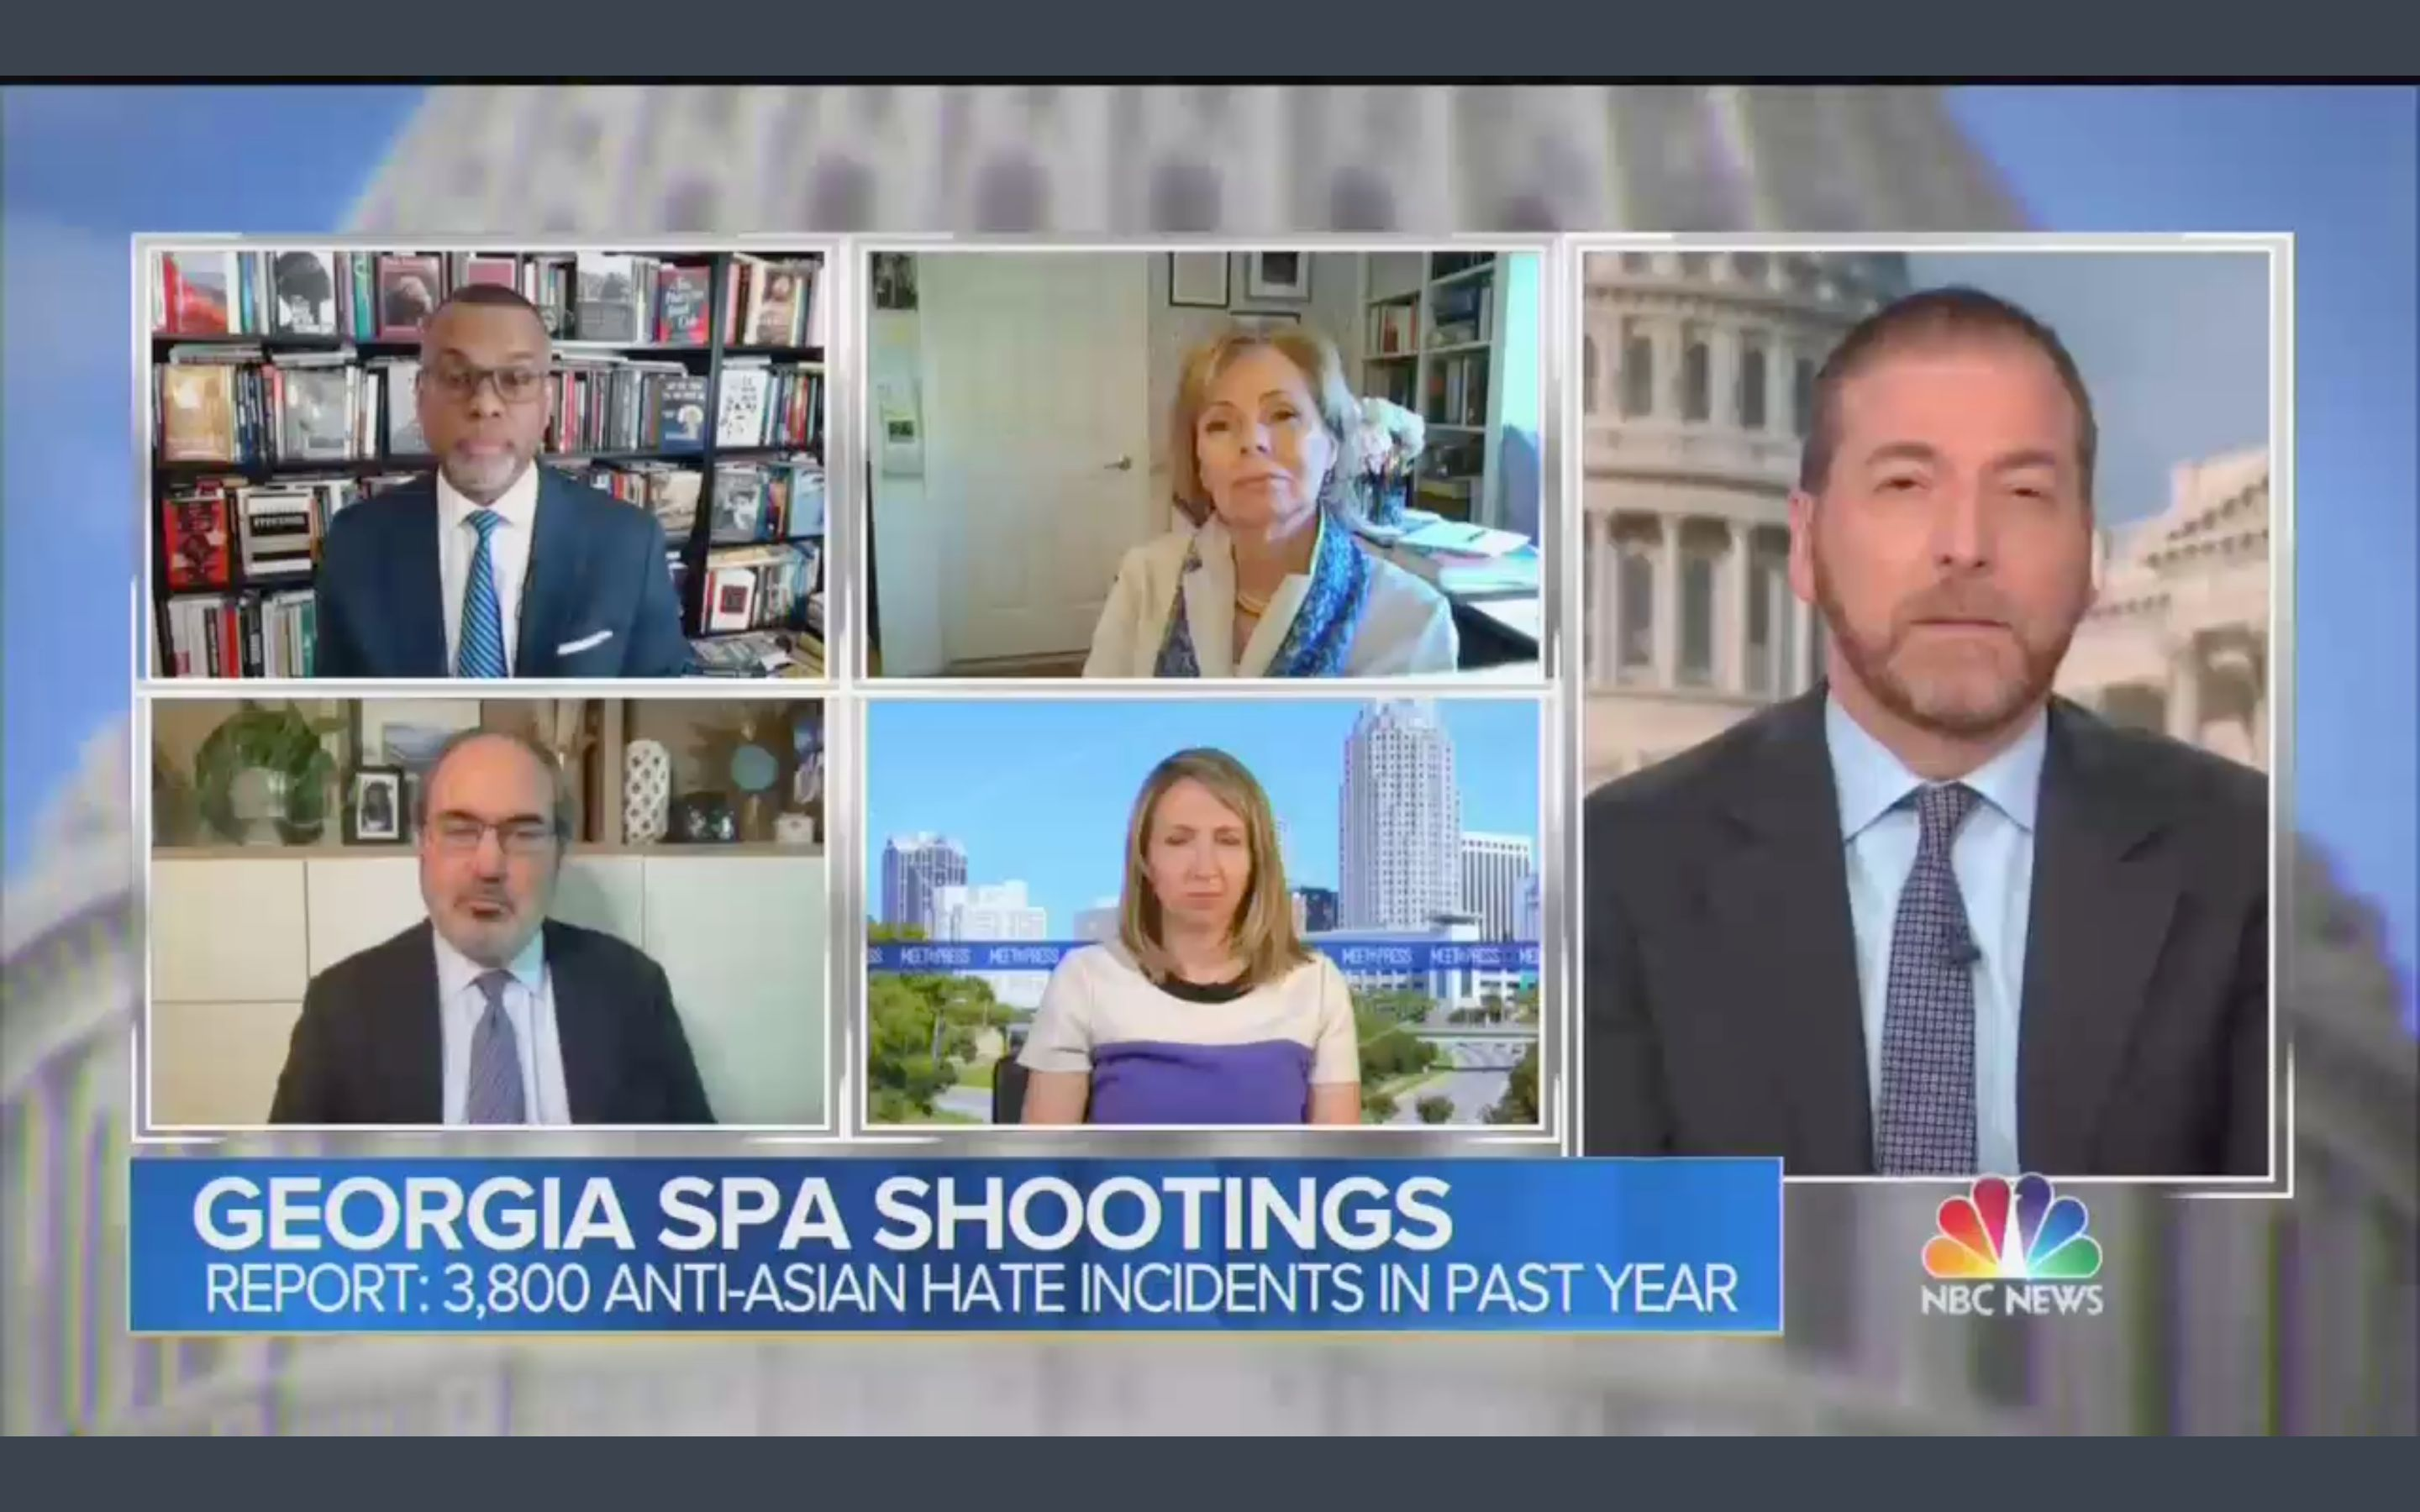 """NBC News' """"Meet the Press"""" panel on Sunday discussed a rise in anti-Asian hate incidents in the U.S., but it failed to includ"""